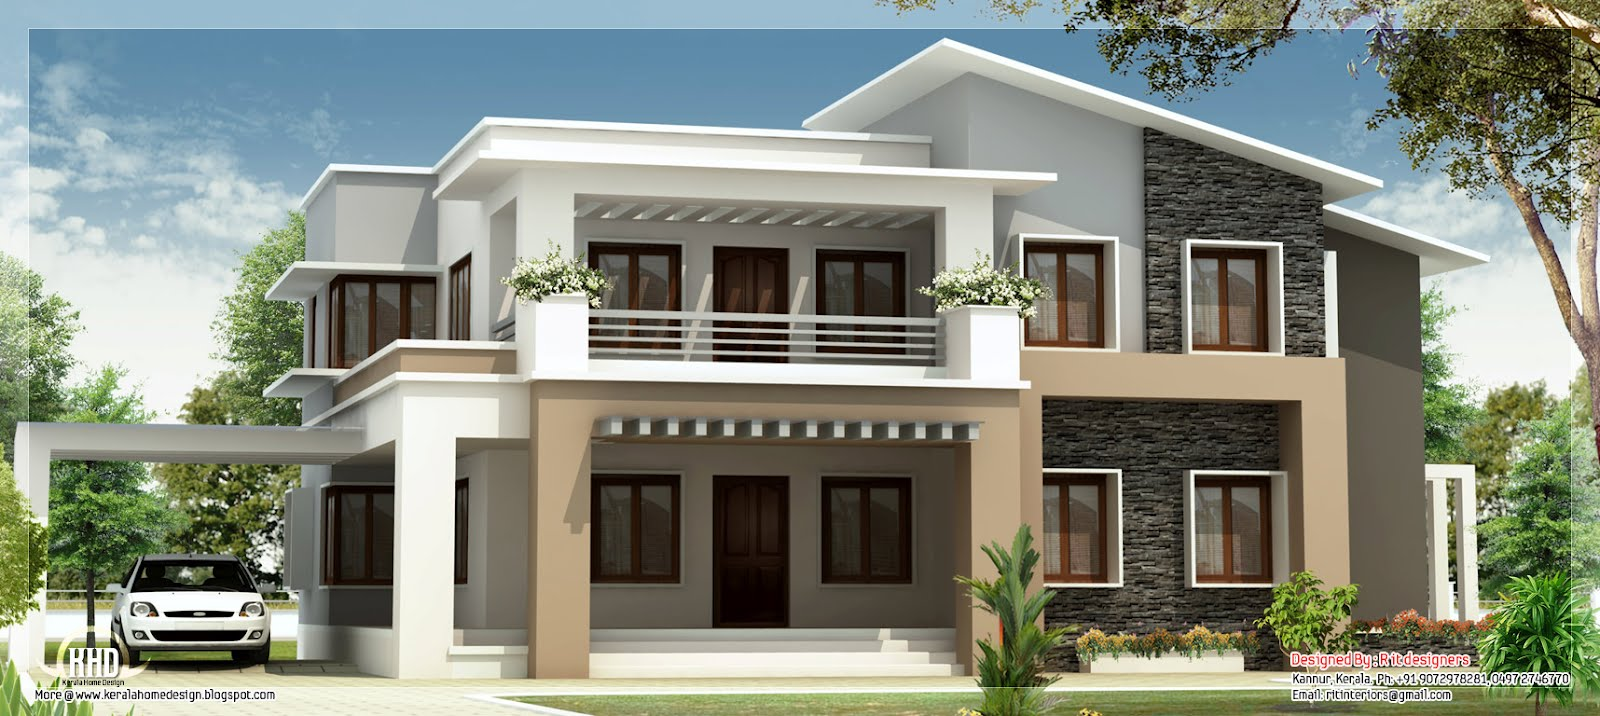 Modern mix double floor home design - Kerala home design ...